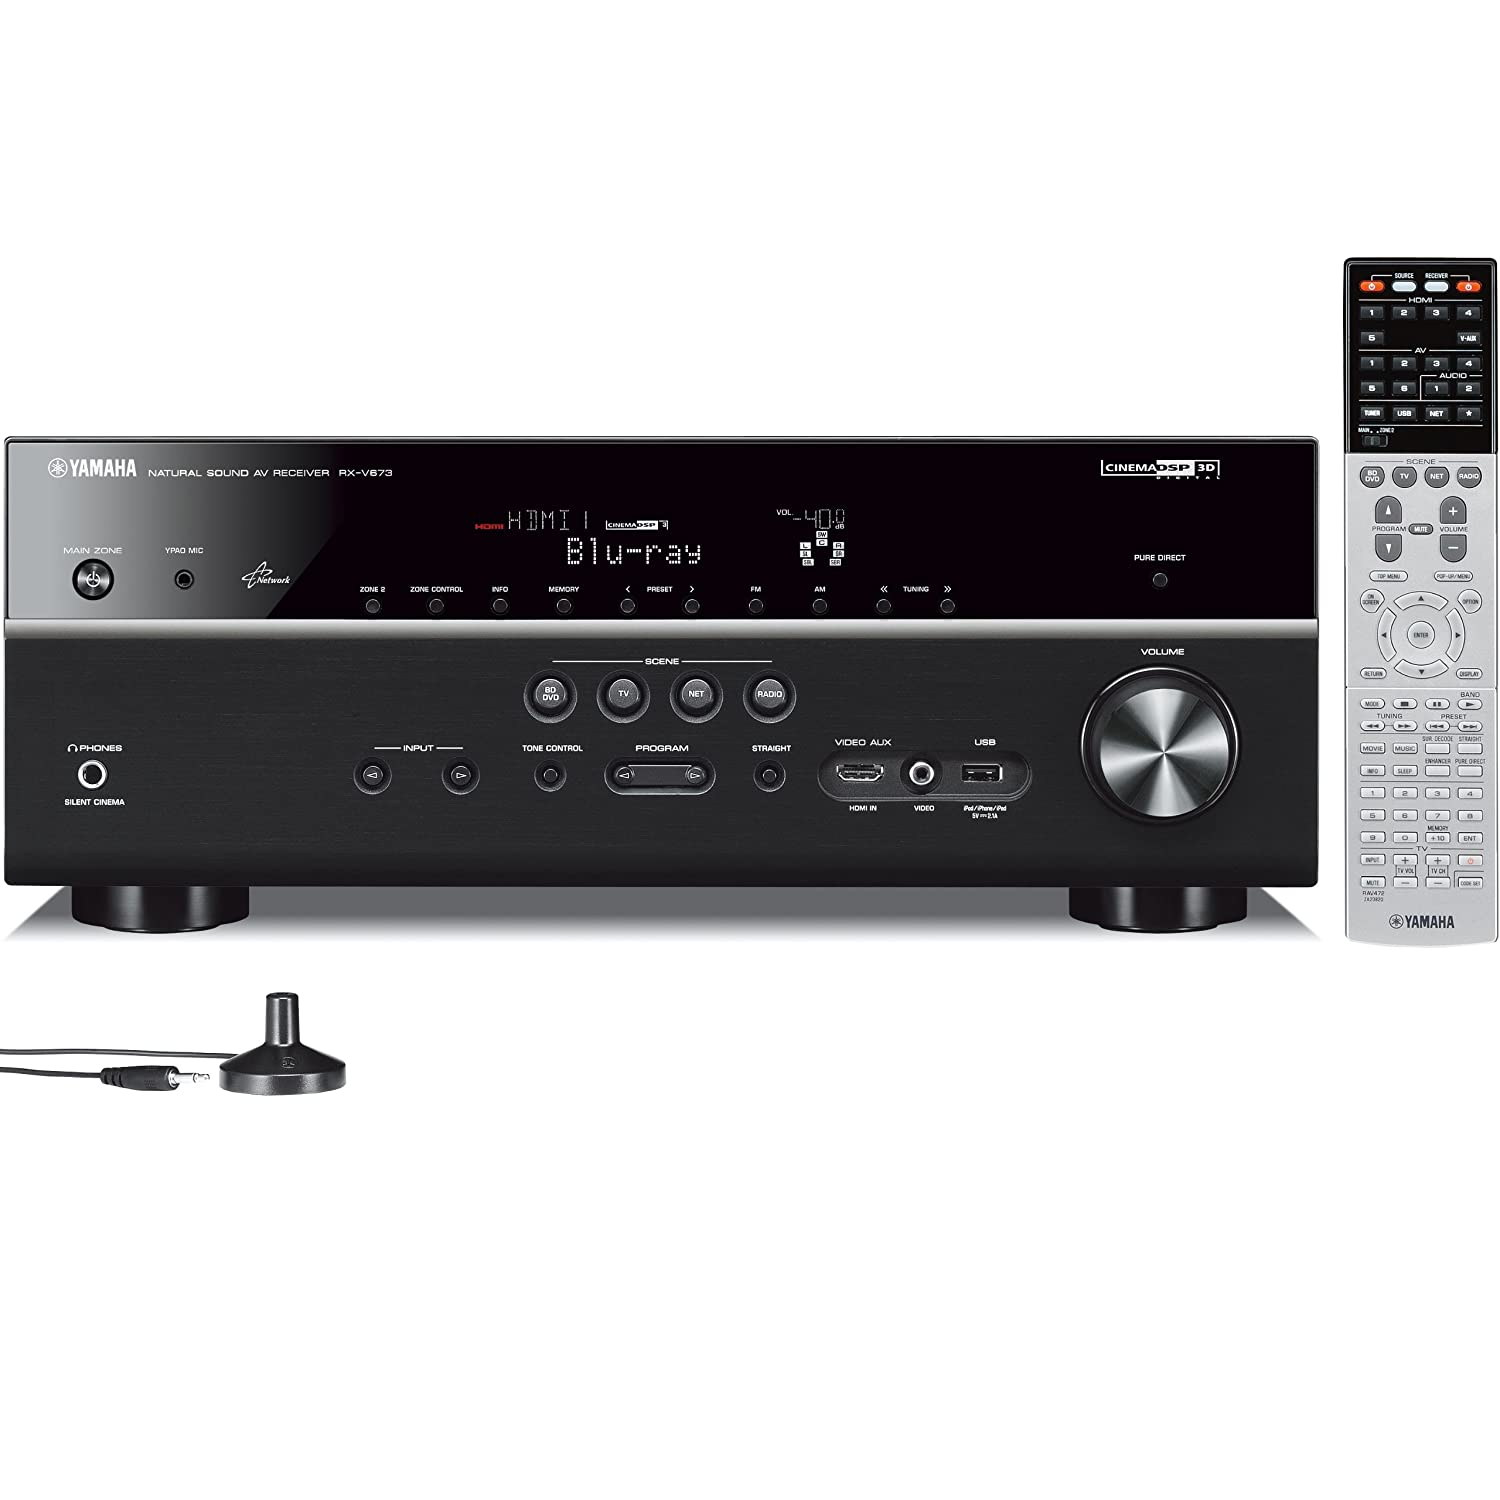 Yamaha RX-V673 7.2-Channel Network AV Receiver $379.99